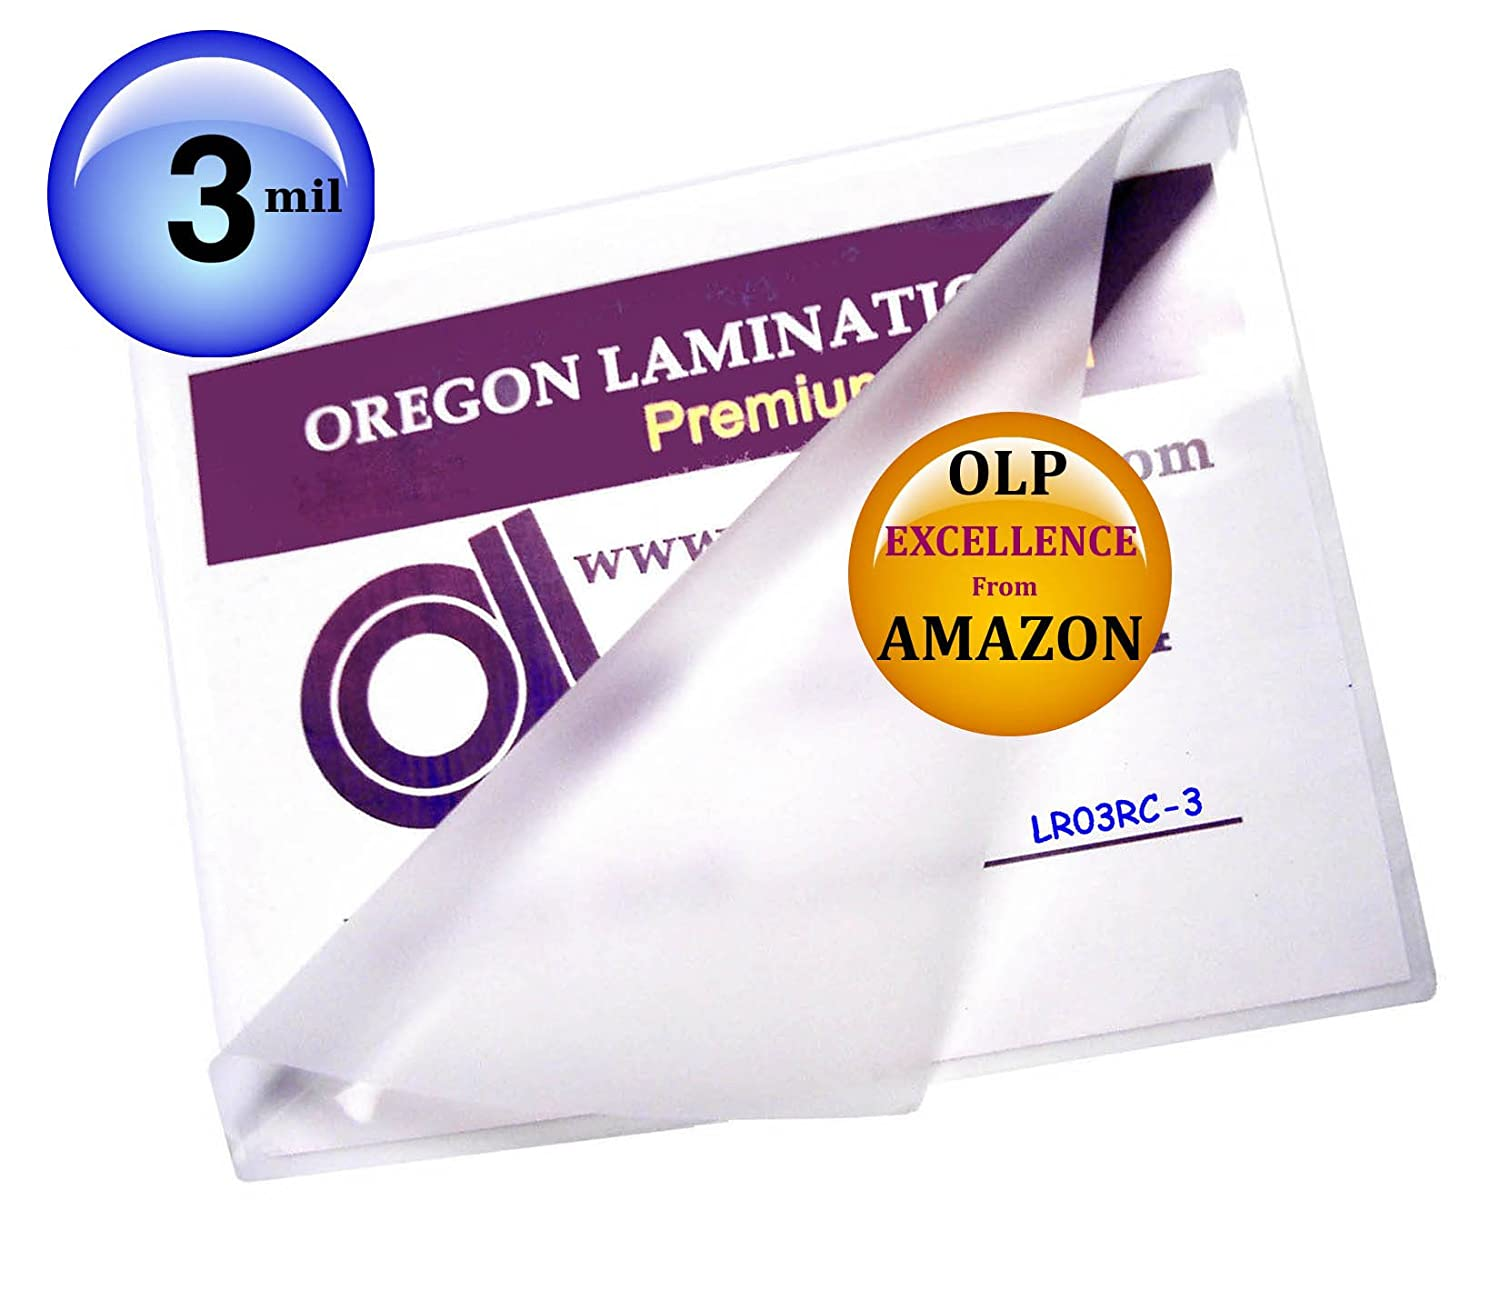 Qty 300 Letter Laminating Pouches 3 Mil 9 x 11-1/2 Hot Oregon Laminations Company LETTER 3-3